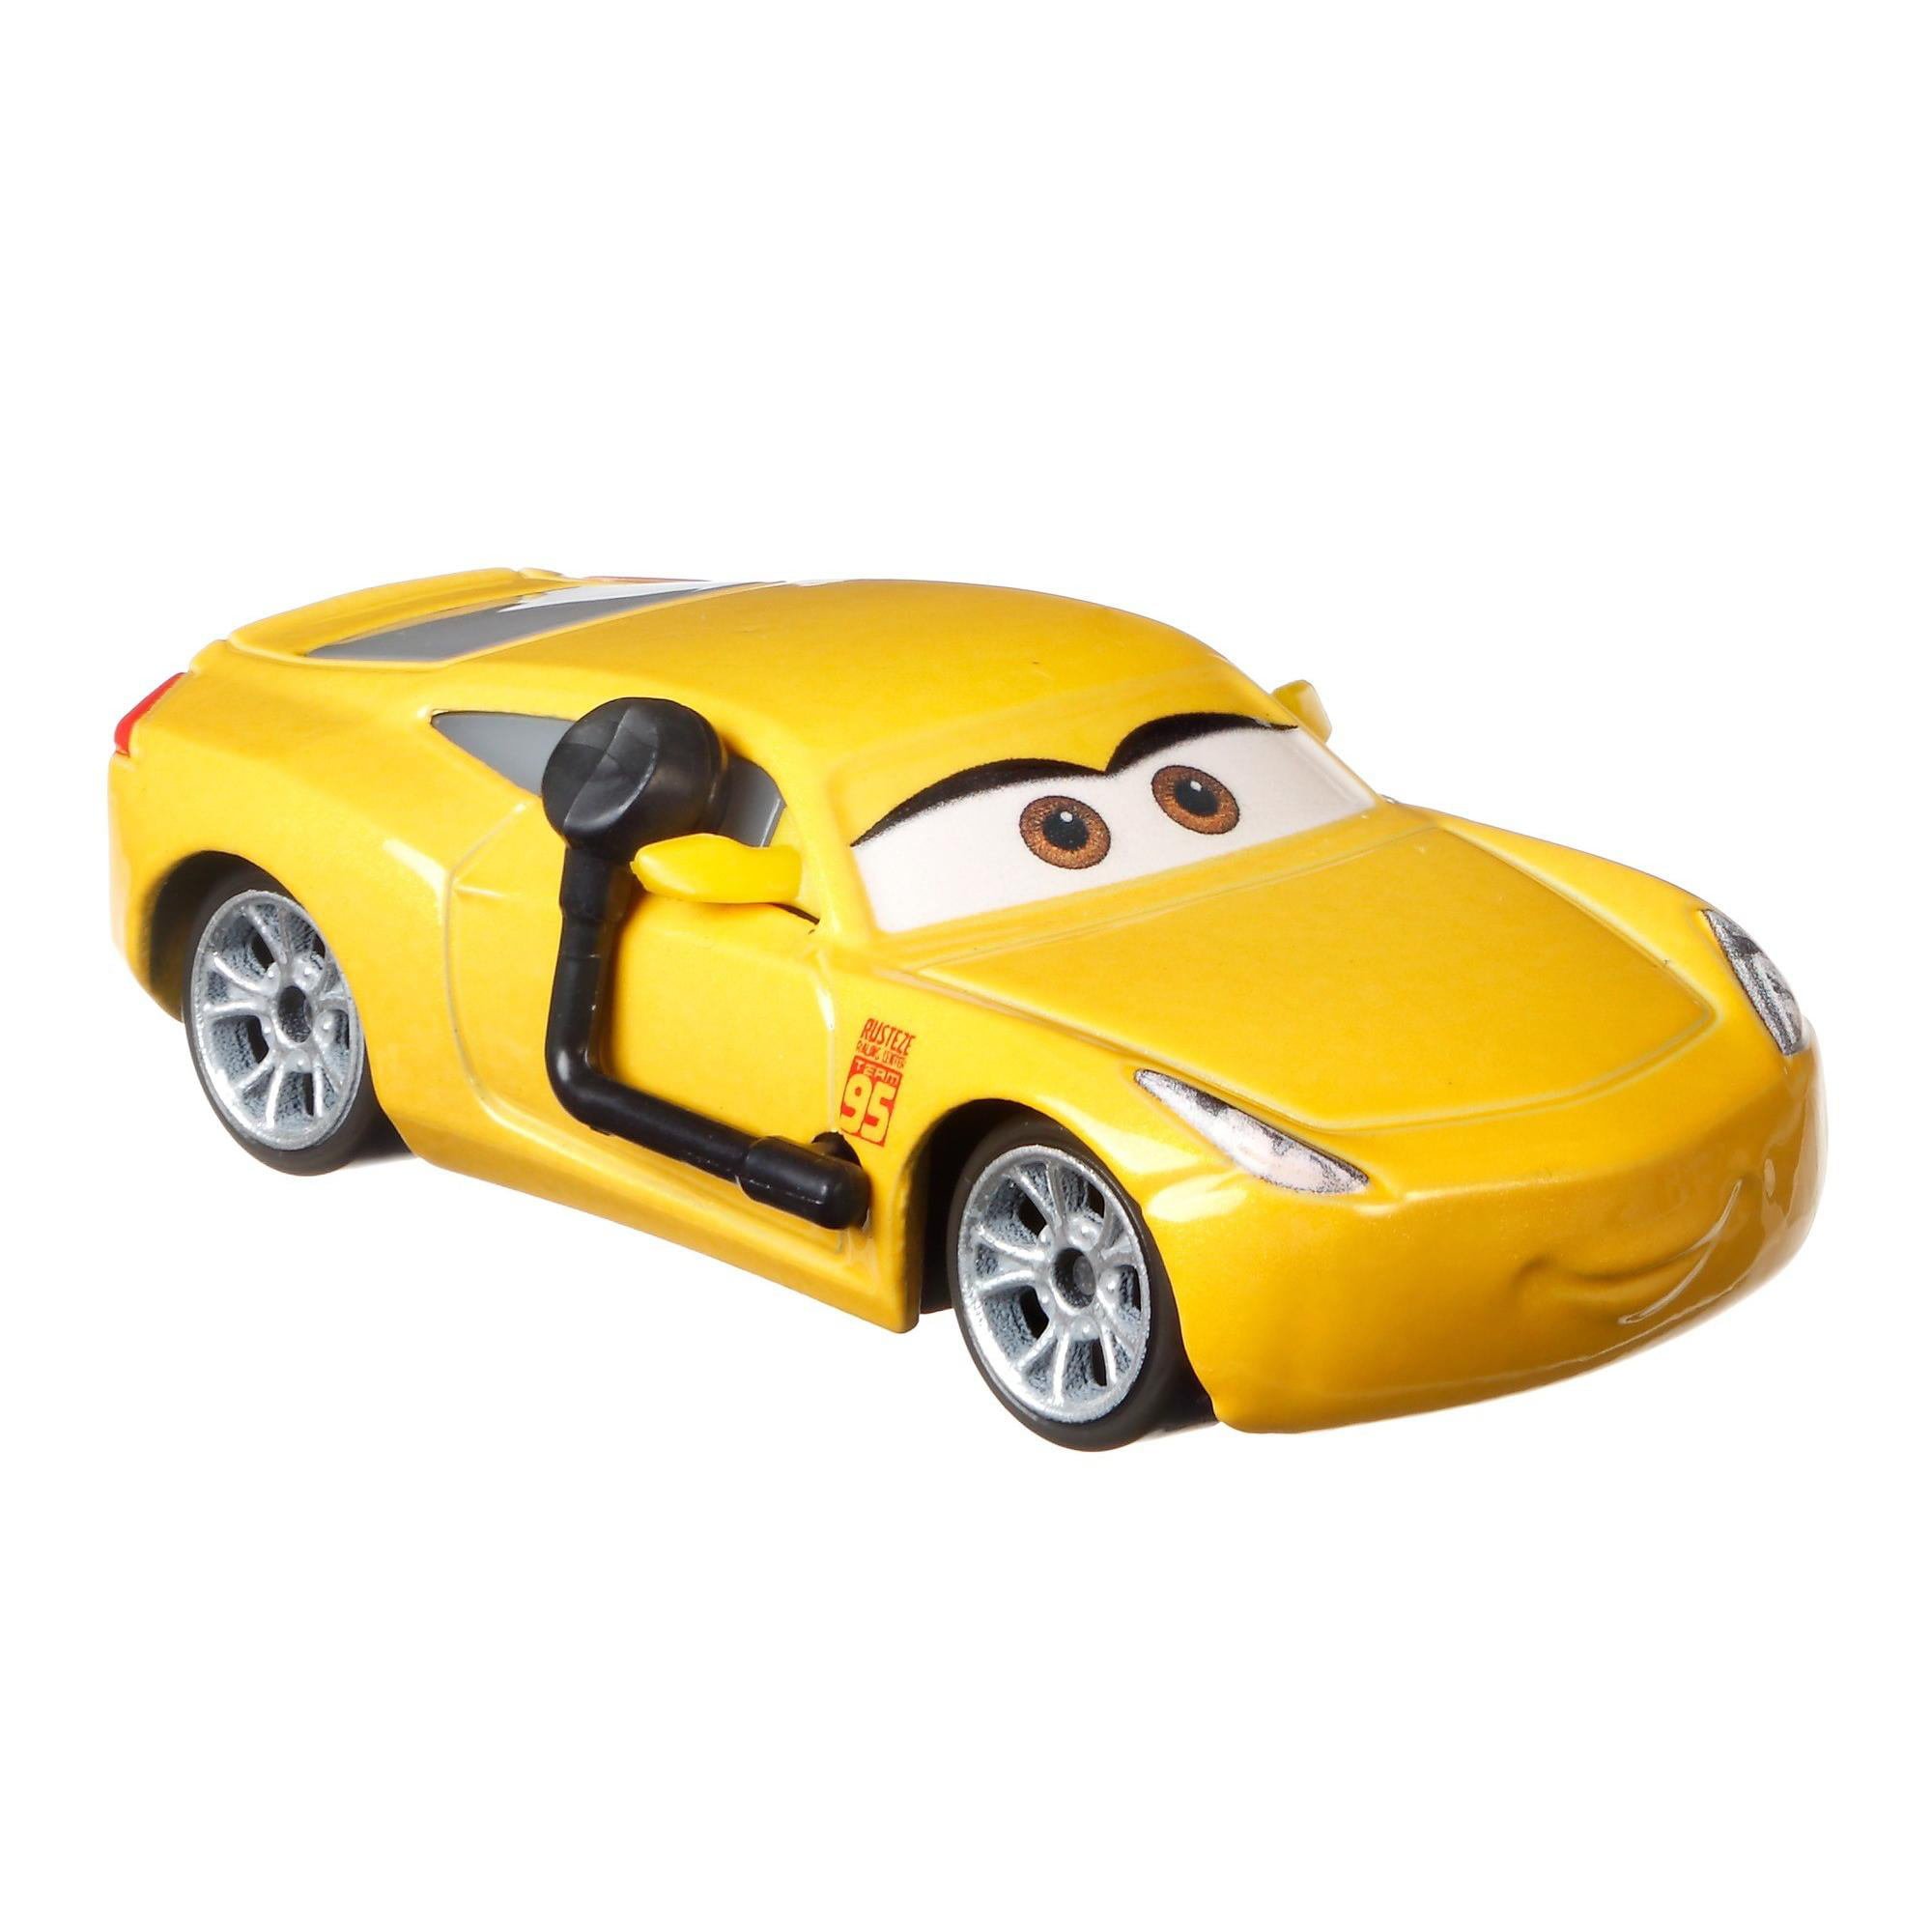 Disney Pixar Cars 3 Cruz Ramirez With Mic Character Vehicle